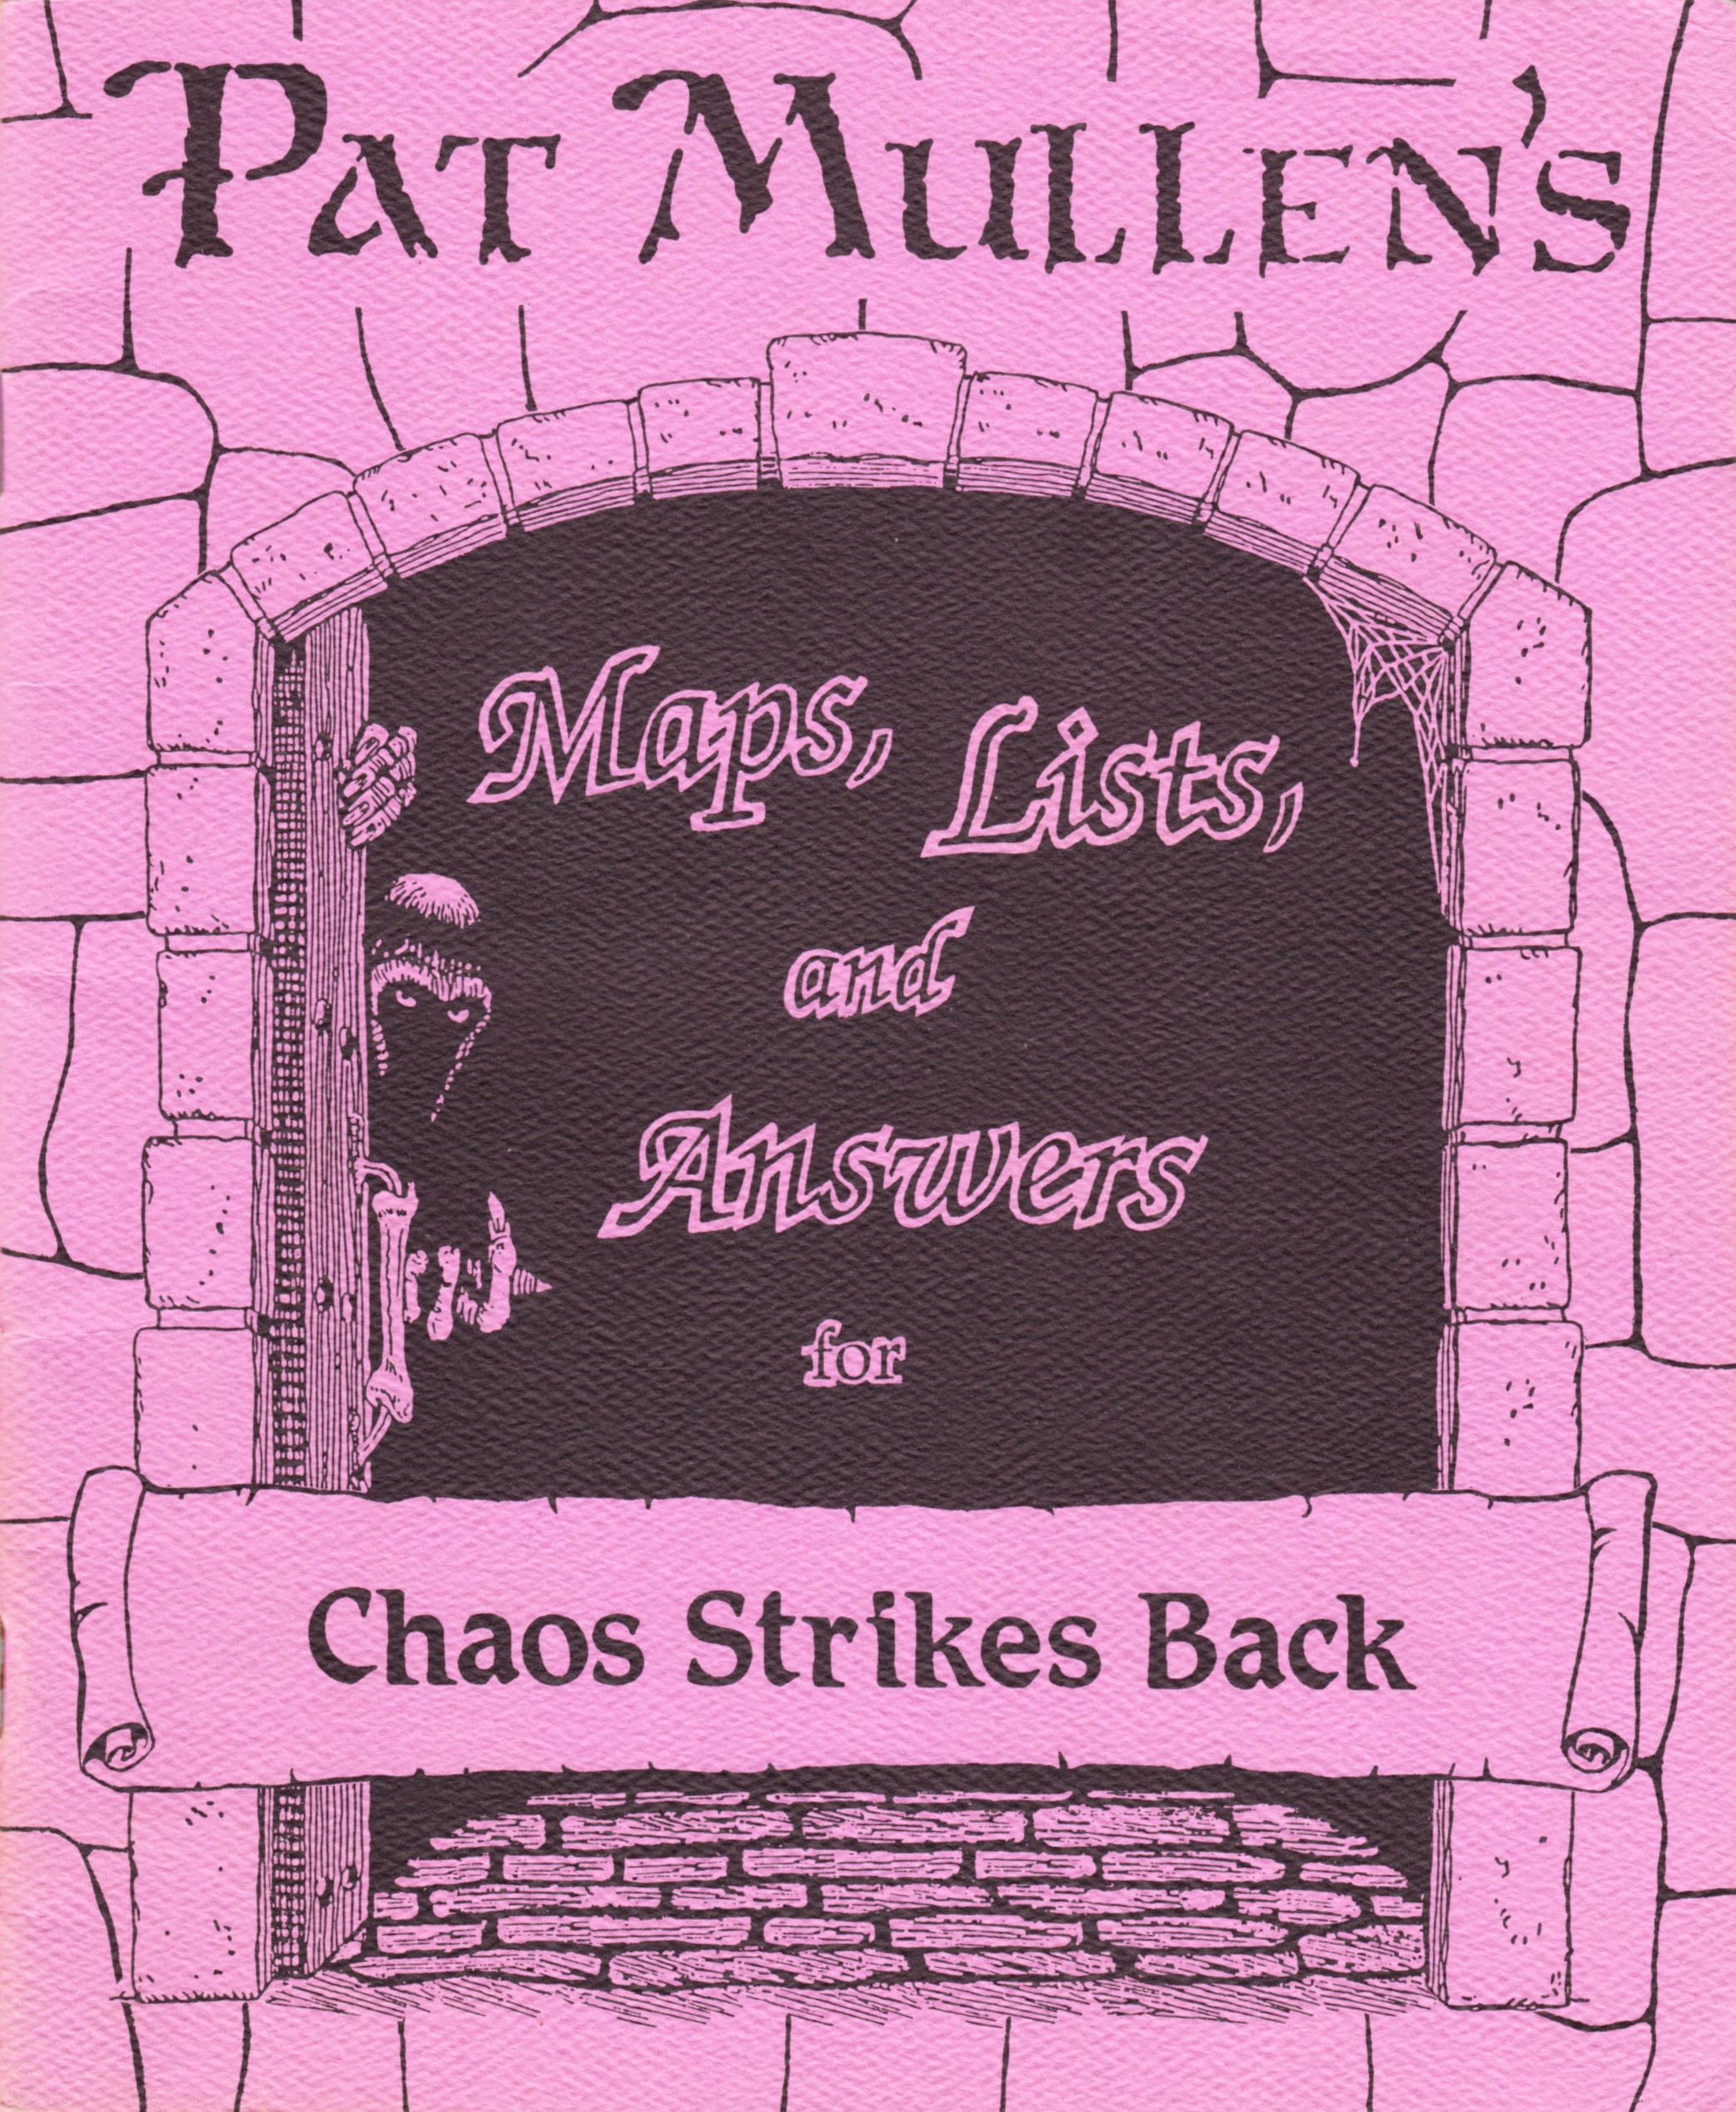 Hint Book - Pat Mullen's Maps, Lists, And Answers For Chaos Strikes Back - US - Page 001 - Scan